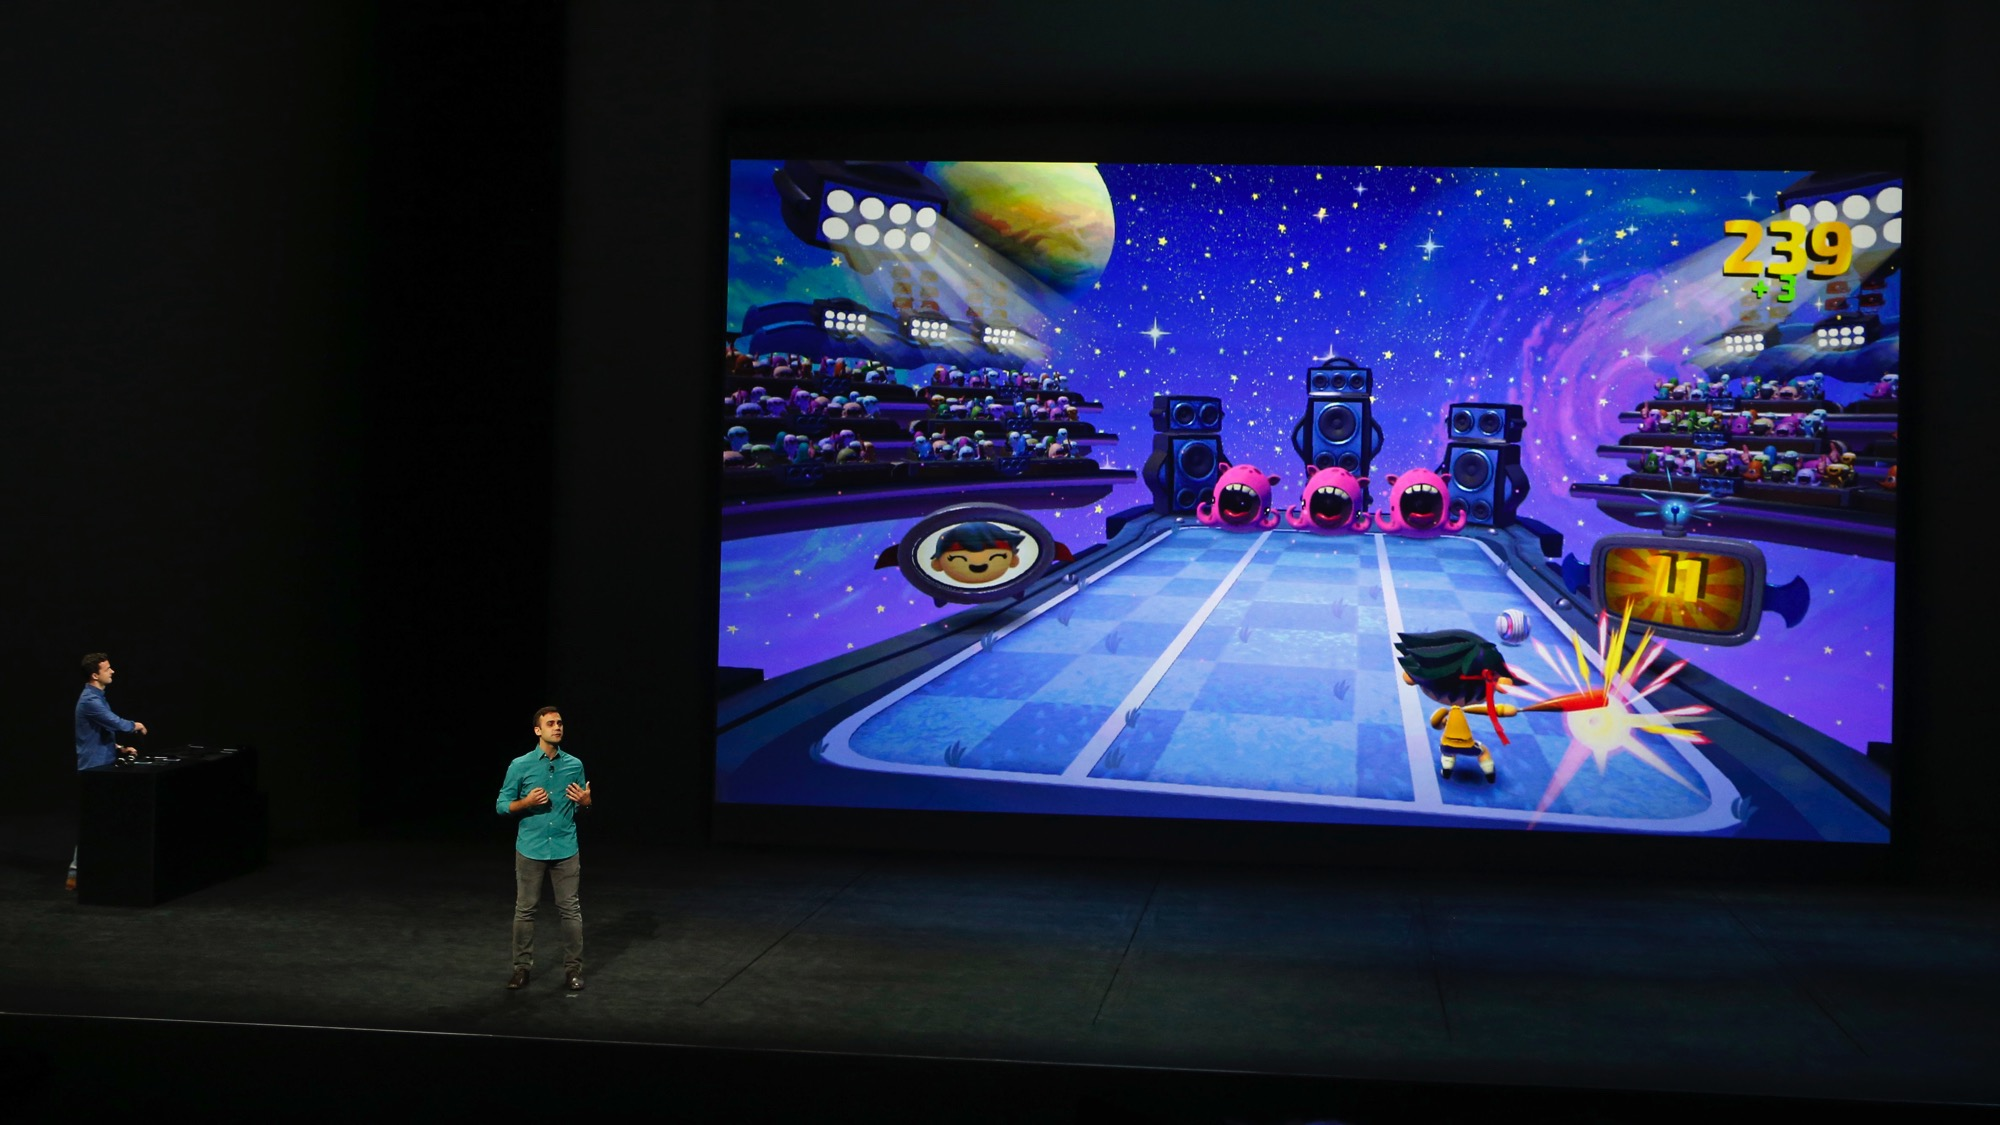 John Carter of Harmonix discusses his company's game Beat Sports for Apple TV during an Apple media event in San Francisco, California